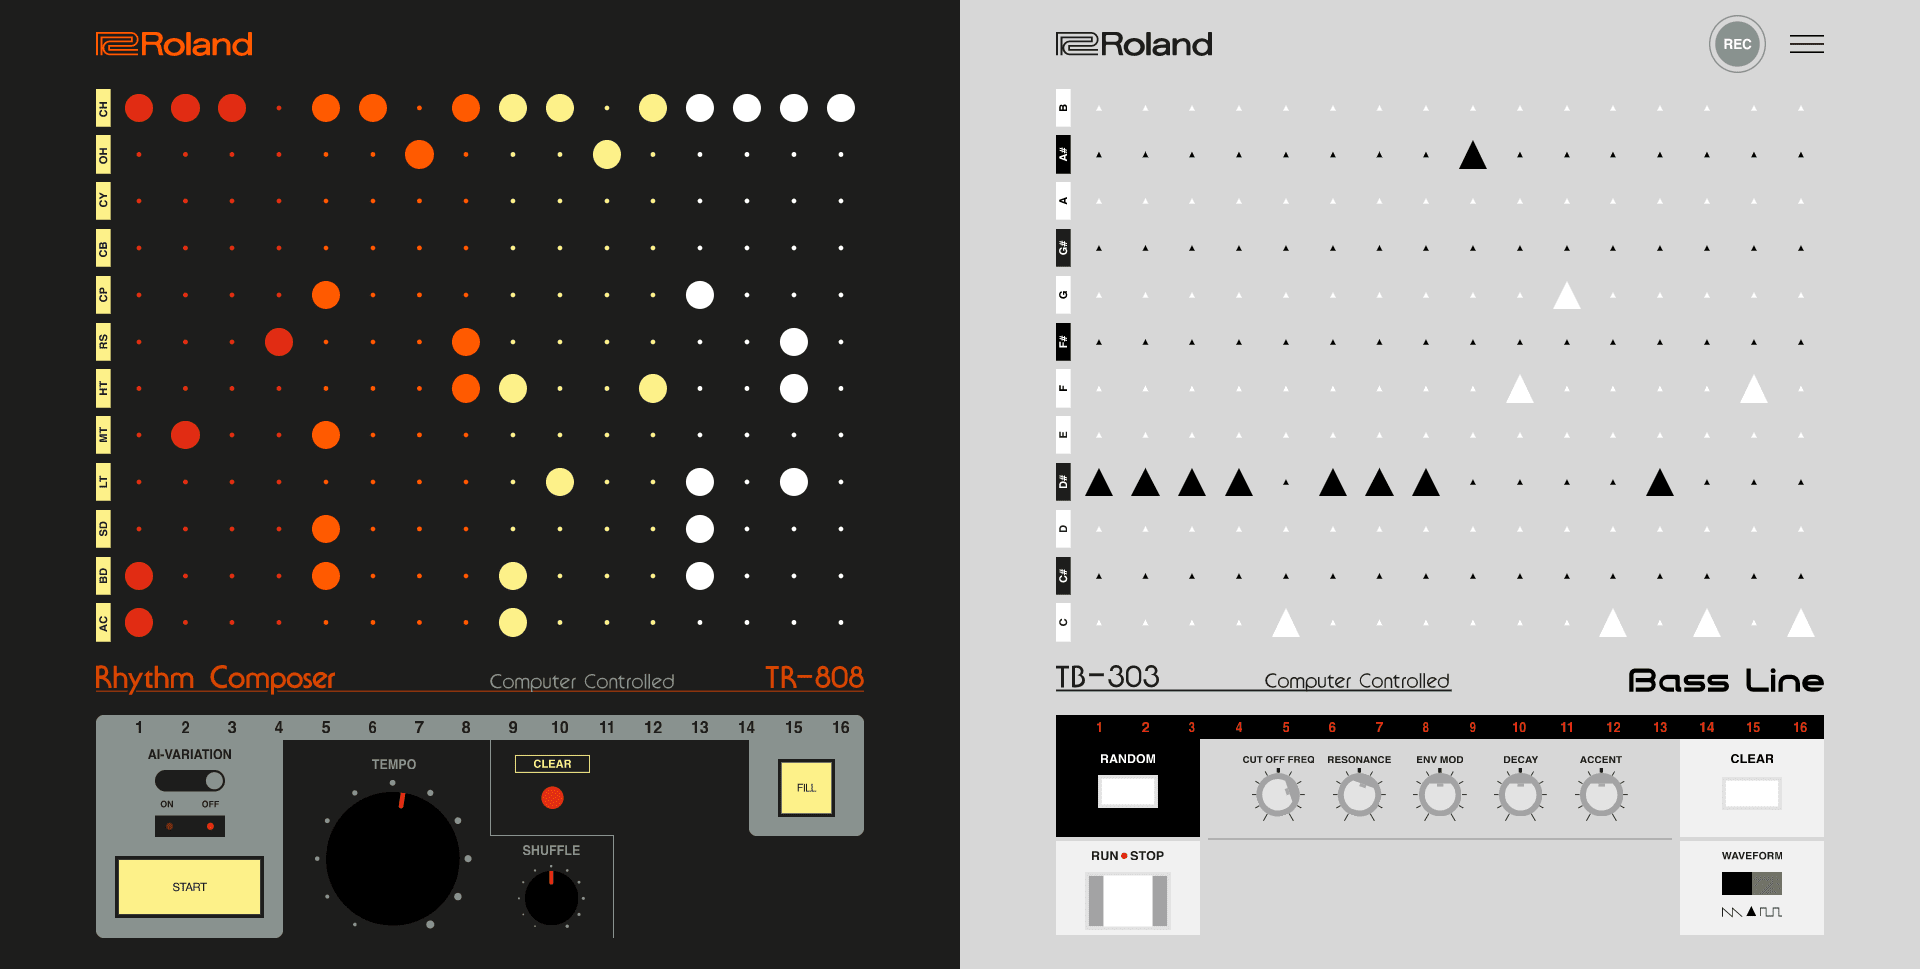 808303.studio is a free online groovebox with the Roland TR-808 and TB-303